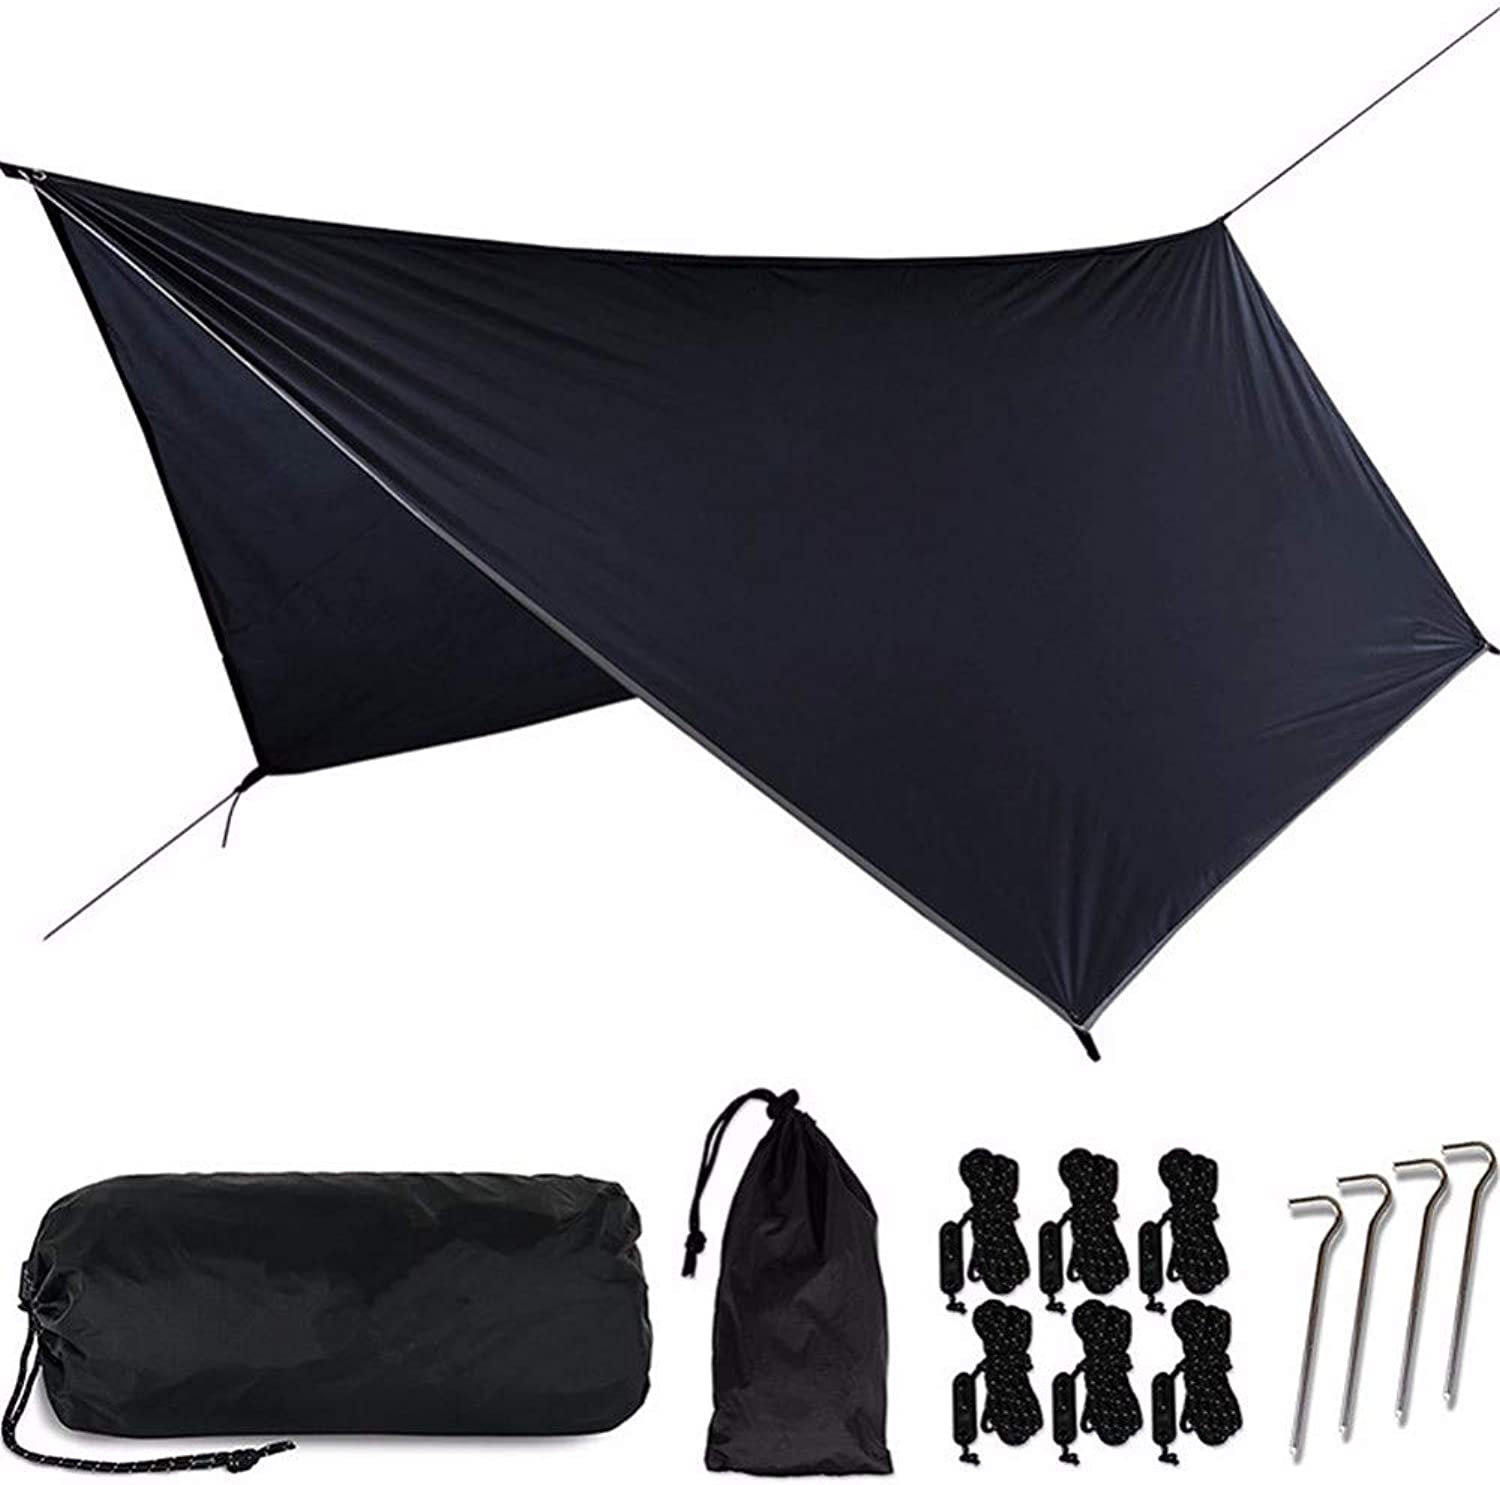 Wu-Hammock Outdoor Multi-Function Canopy Sunscreen Tent Light and Moisture-Proof Mats Hammock Canopy